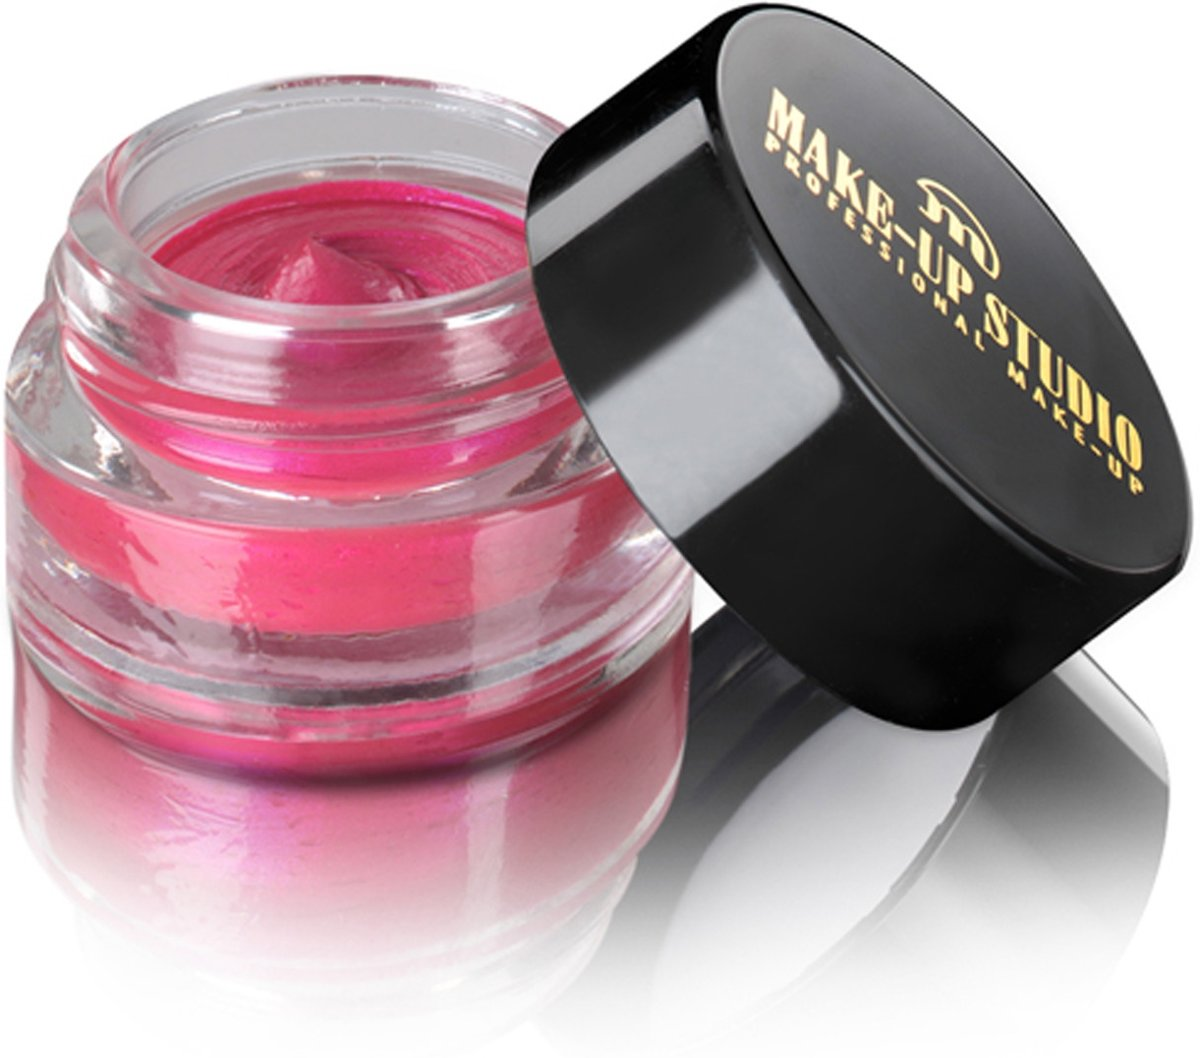 Make-up Studio Durable Eyeshadow Mousse fuchsia Fantasy 5ml